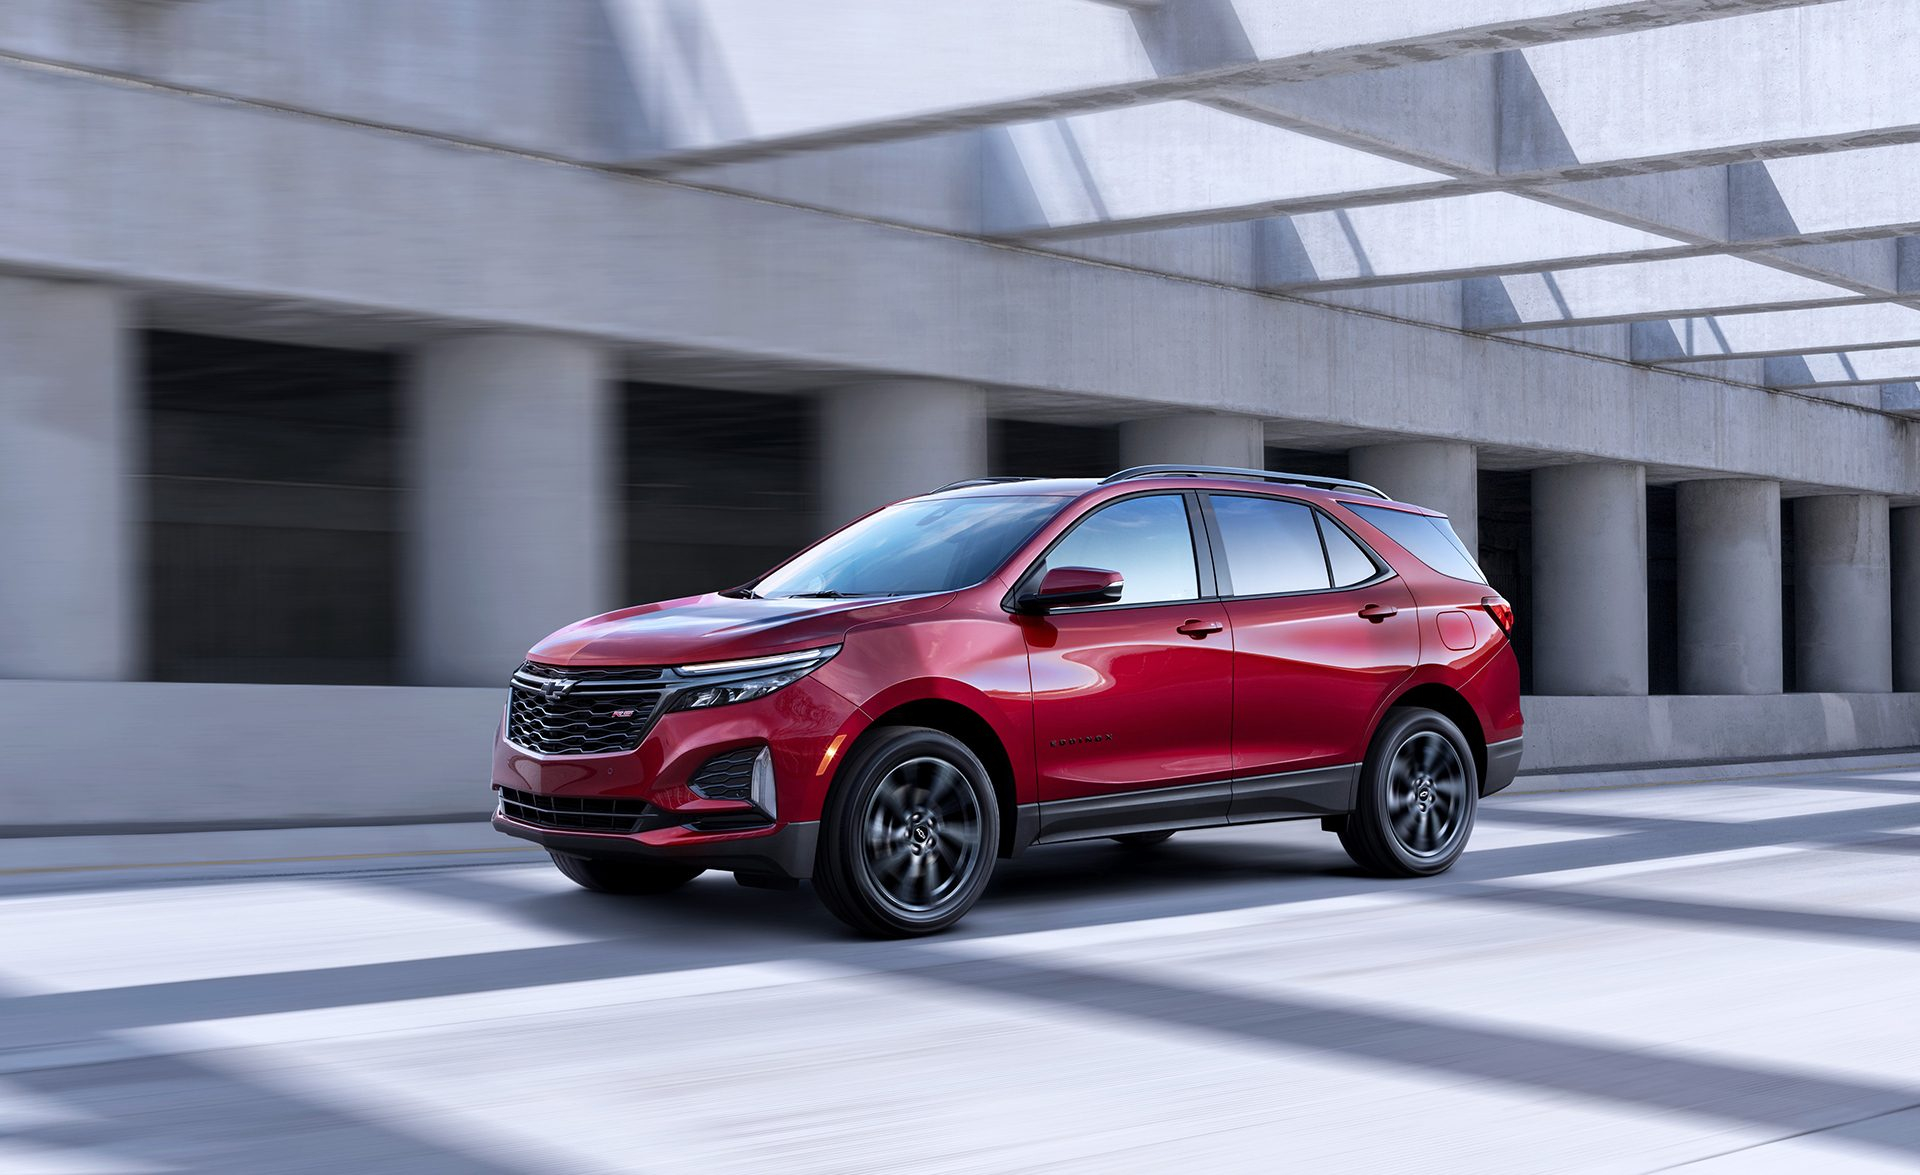 2021 Chevrolet Equinox Blazes A Familiar Styling Path Build A 2021 Chevrolet Equinox Price, Cost, Accessories